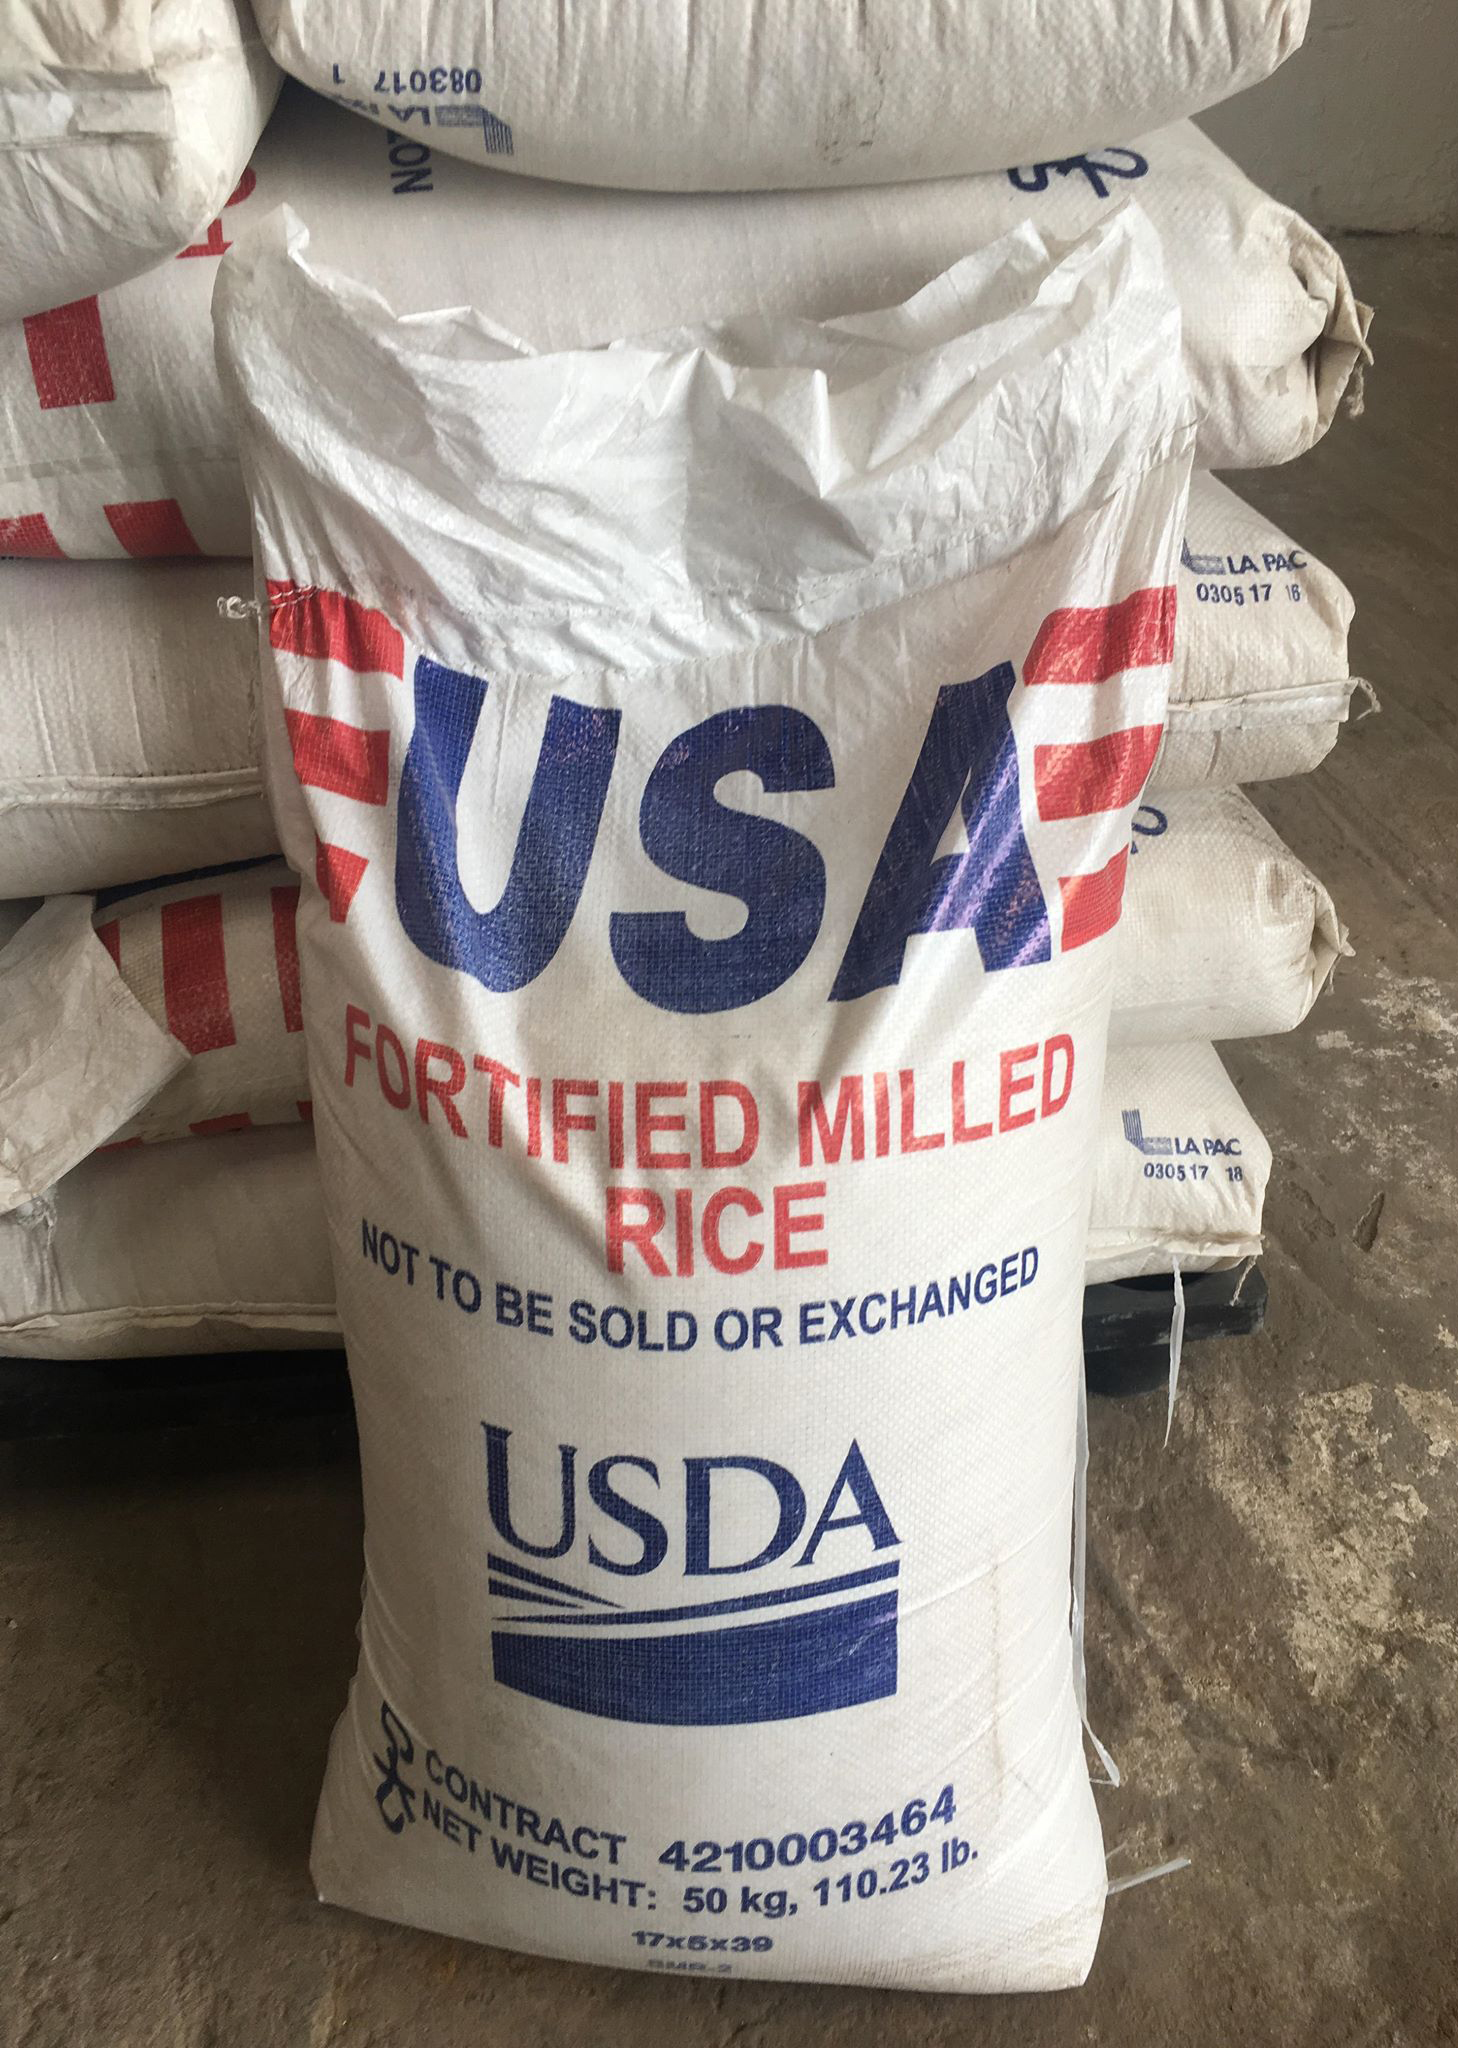 50kg bag of USA fortified rice